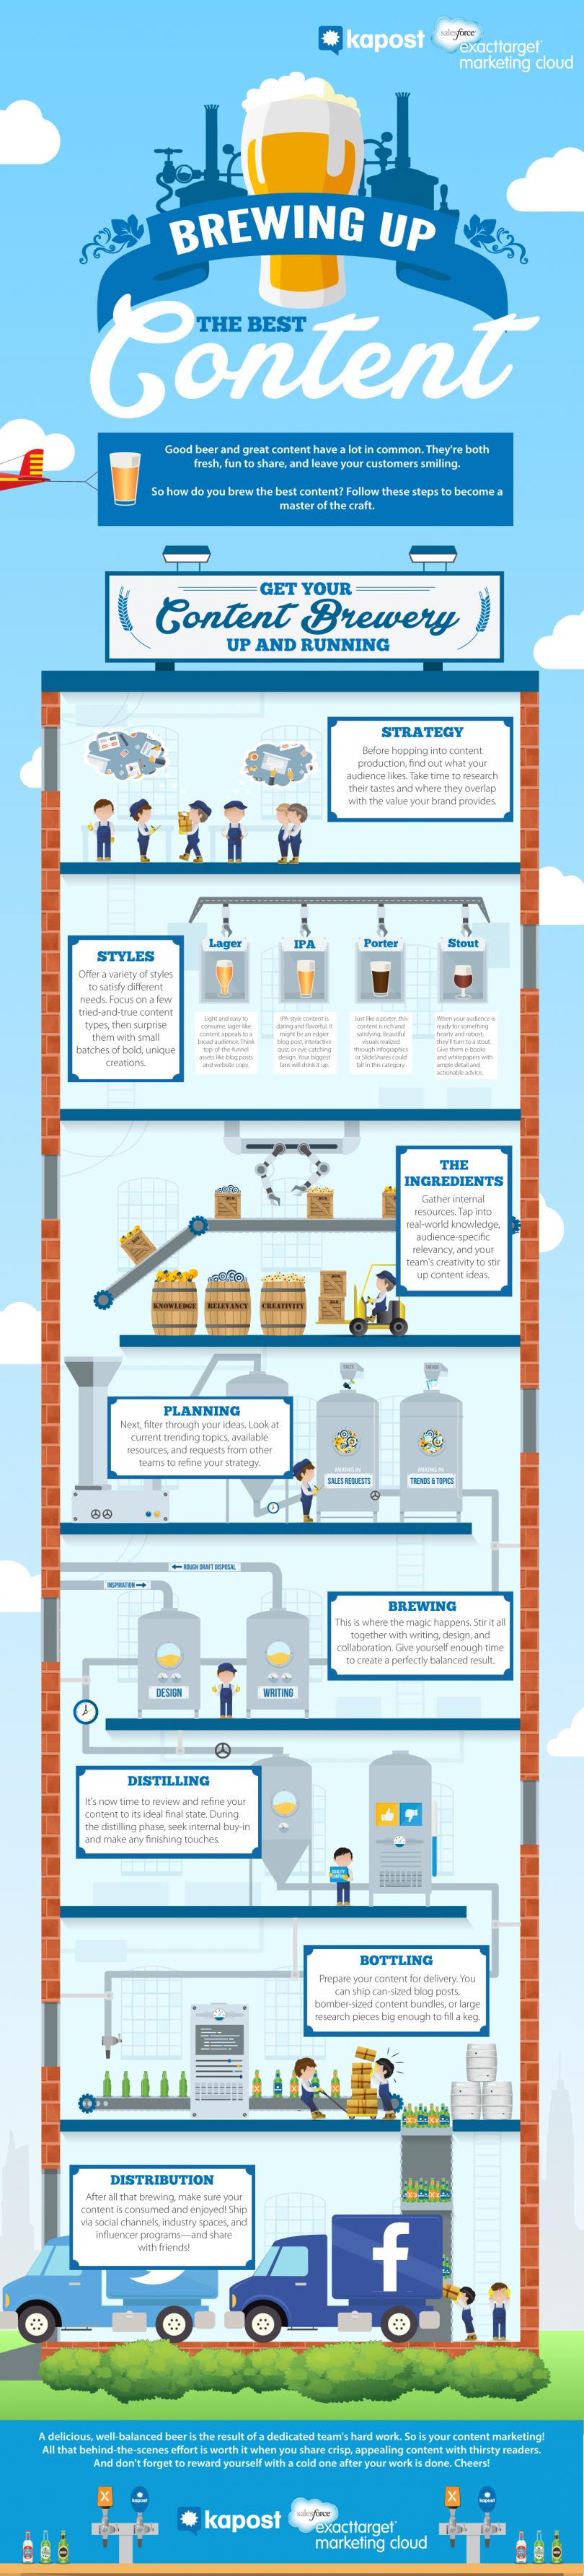 content_brewery_infographic